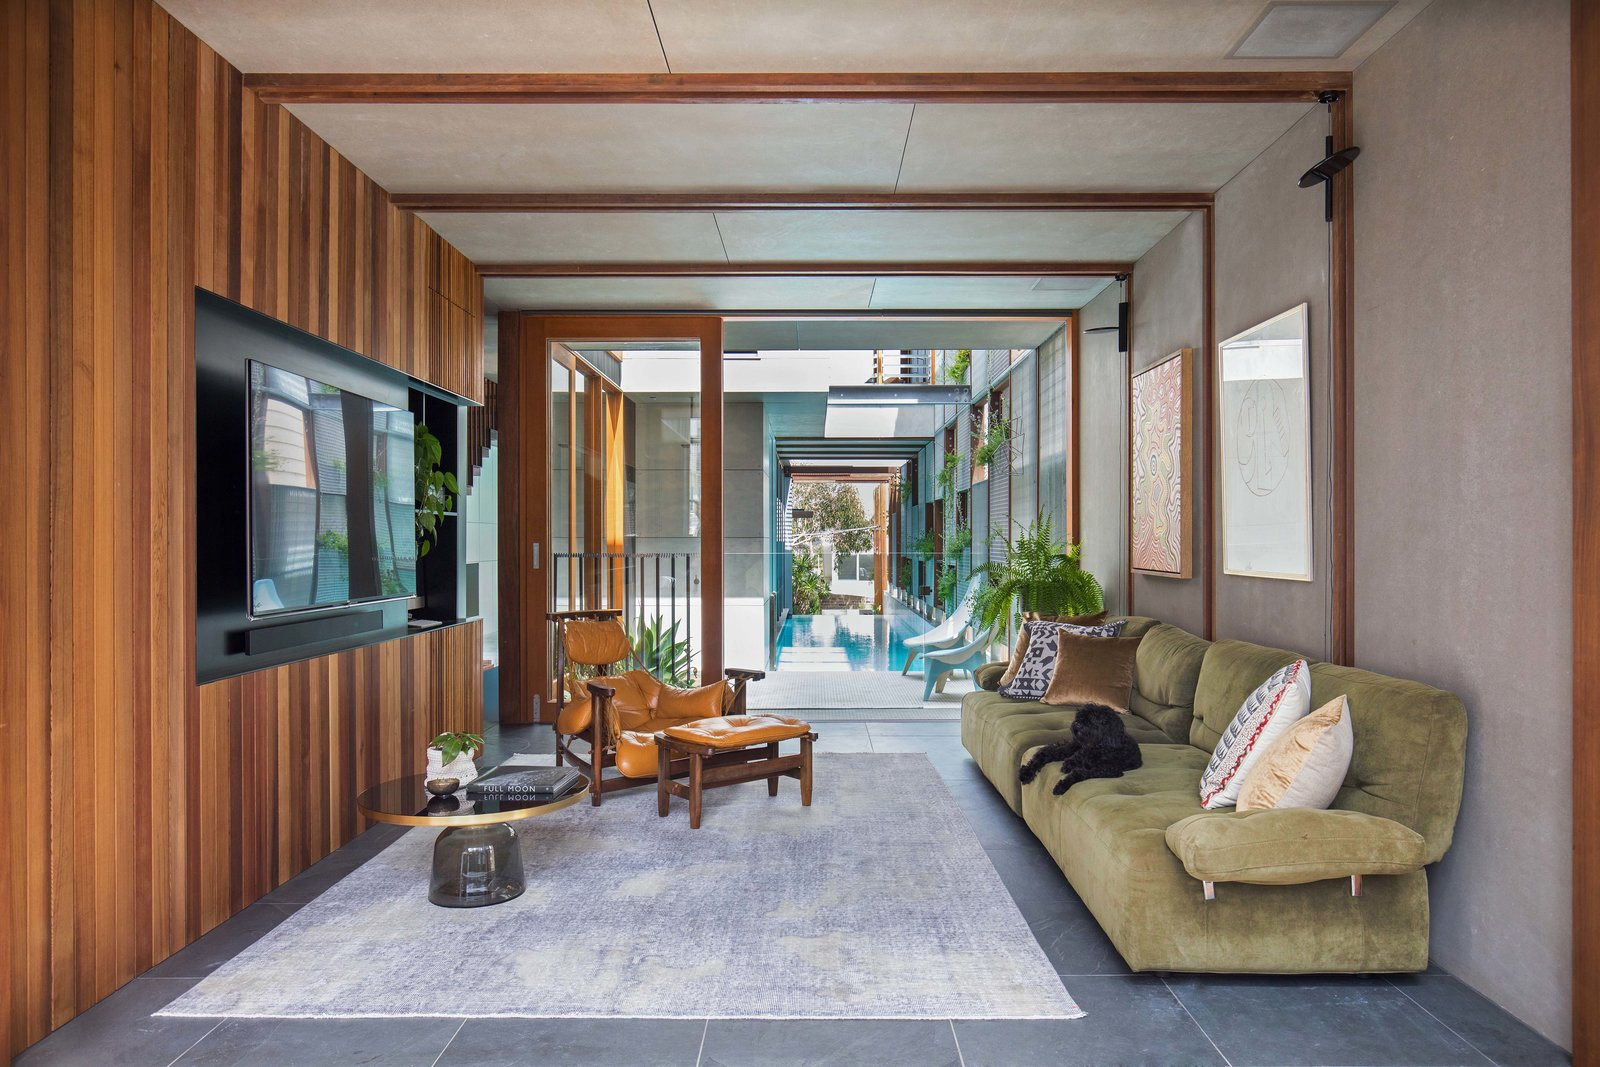 Living Room, Sofa, Chair, Coffee Tables, Concrete Floor, and Rug Floor  Photo 9 of 19 in Living Screens Conceal a North Bondi Beach House and a Semi-Indoor Pool